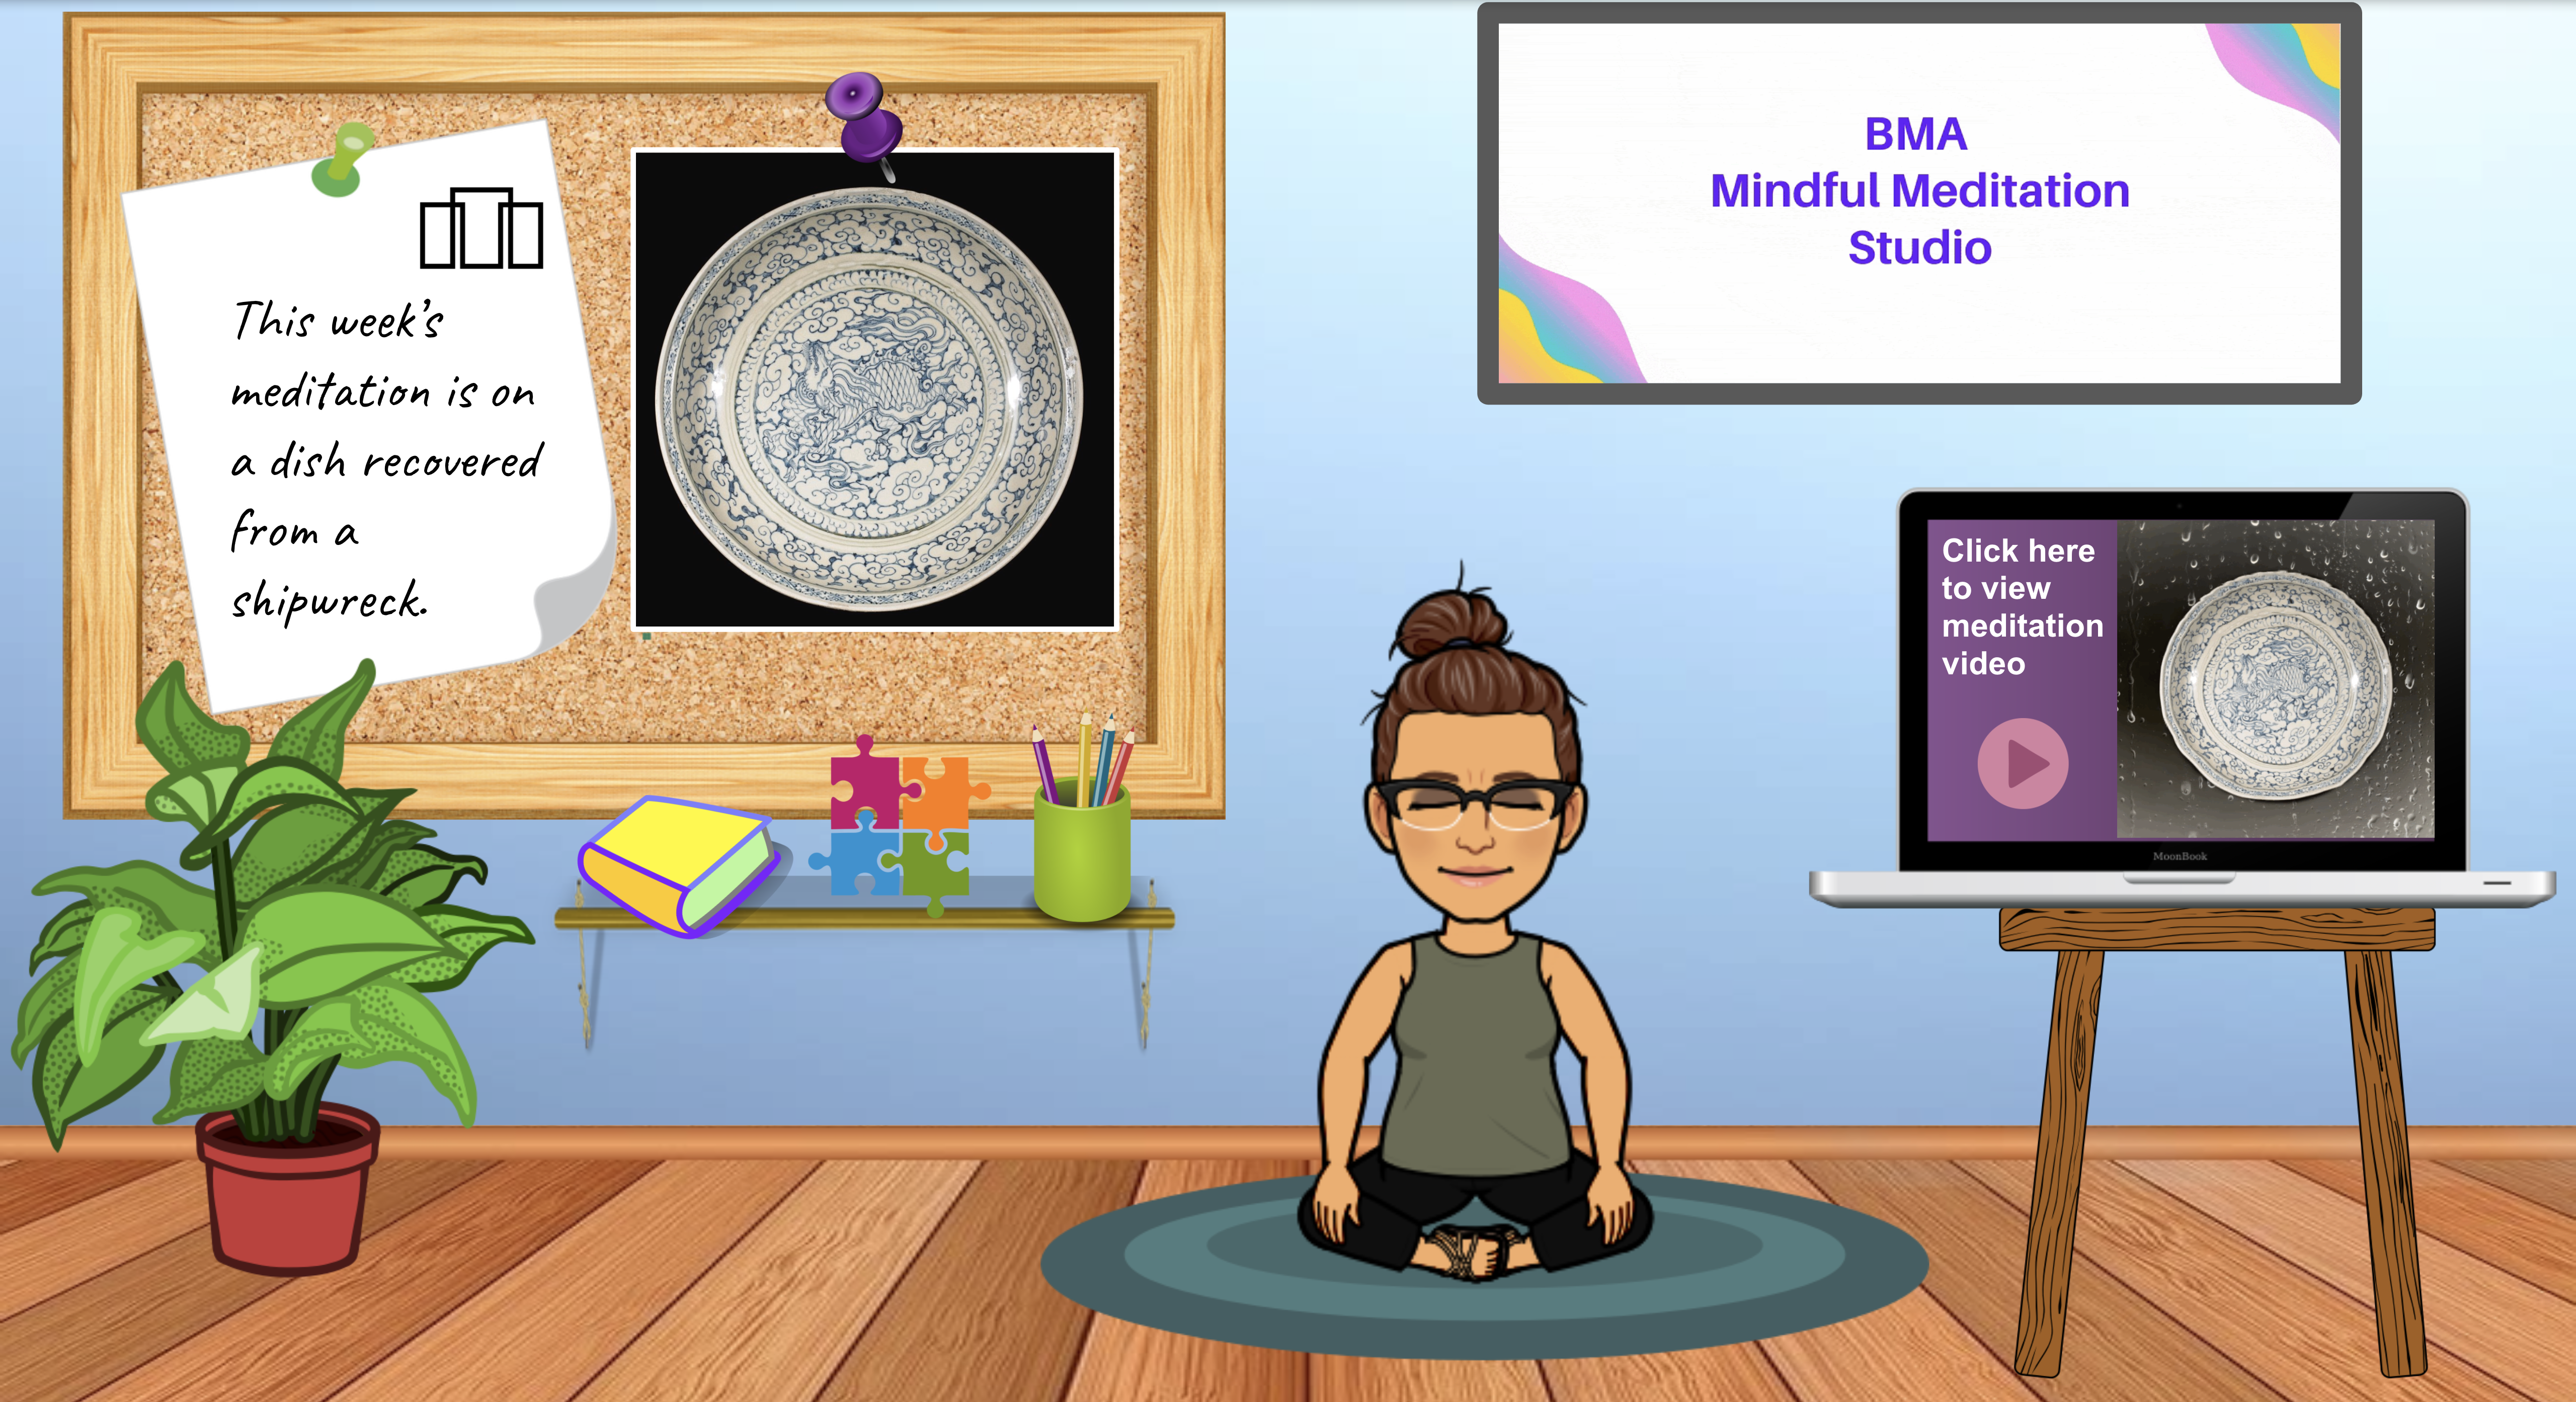 Interactive Meditation Studio – Dish Recovered from a Shipwreck